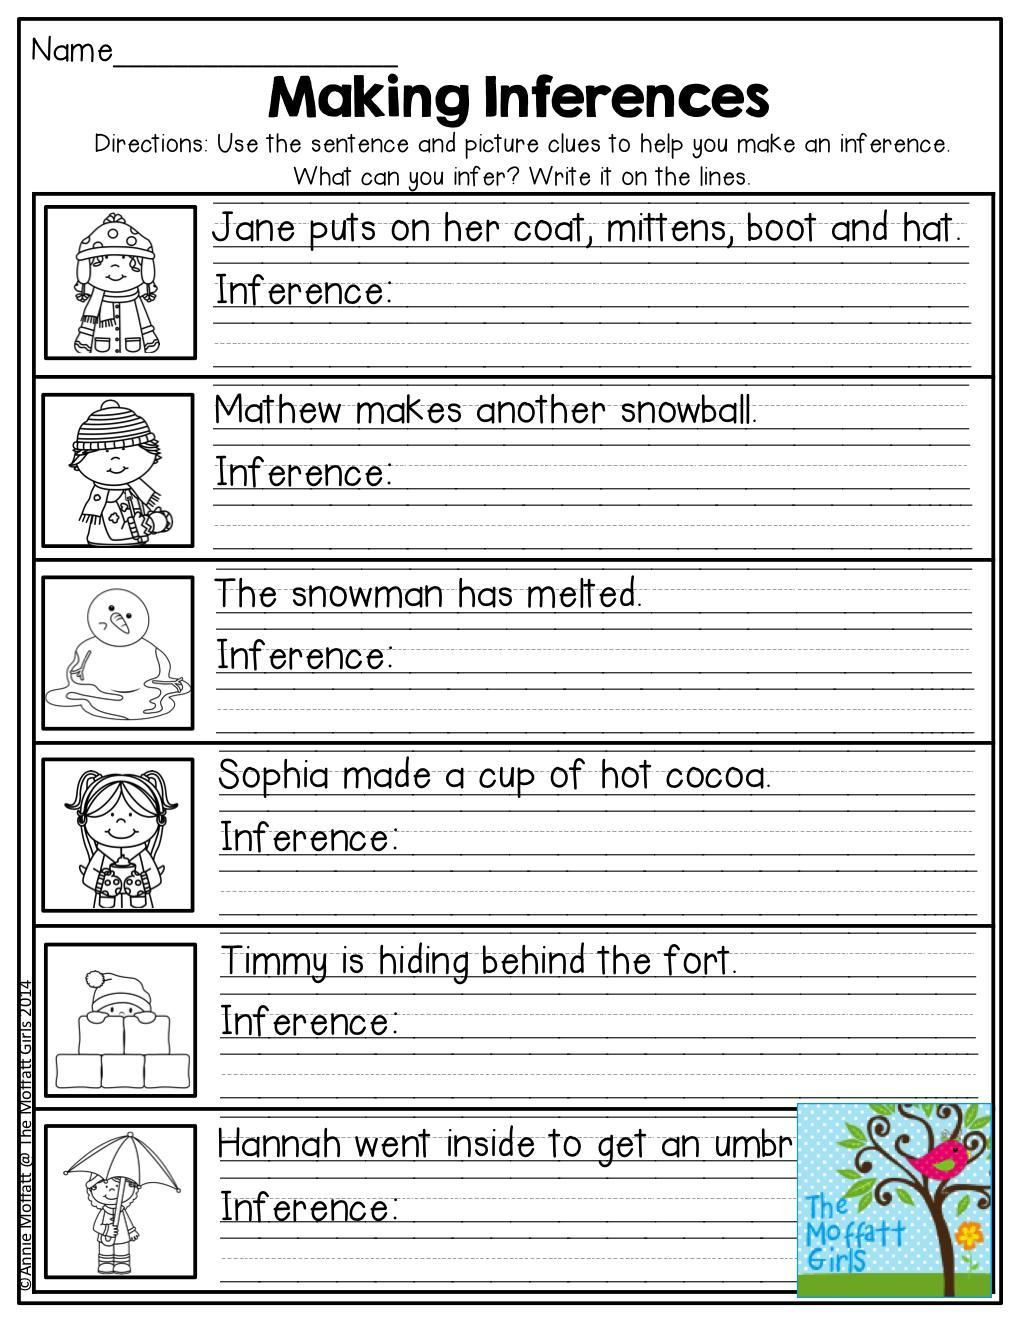 Middle School Inference Worksheets Worksheet Free First Grade Phonics Worksheets Worksheet